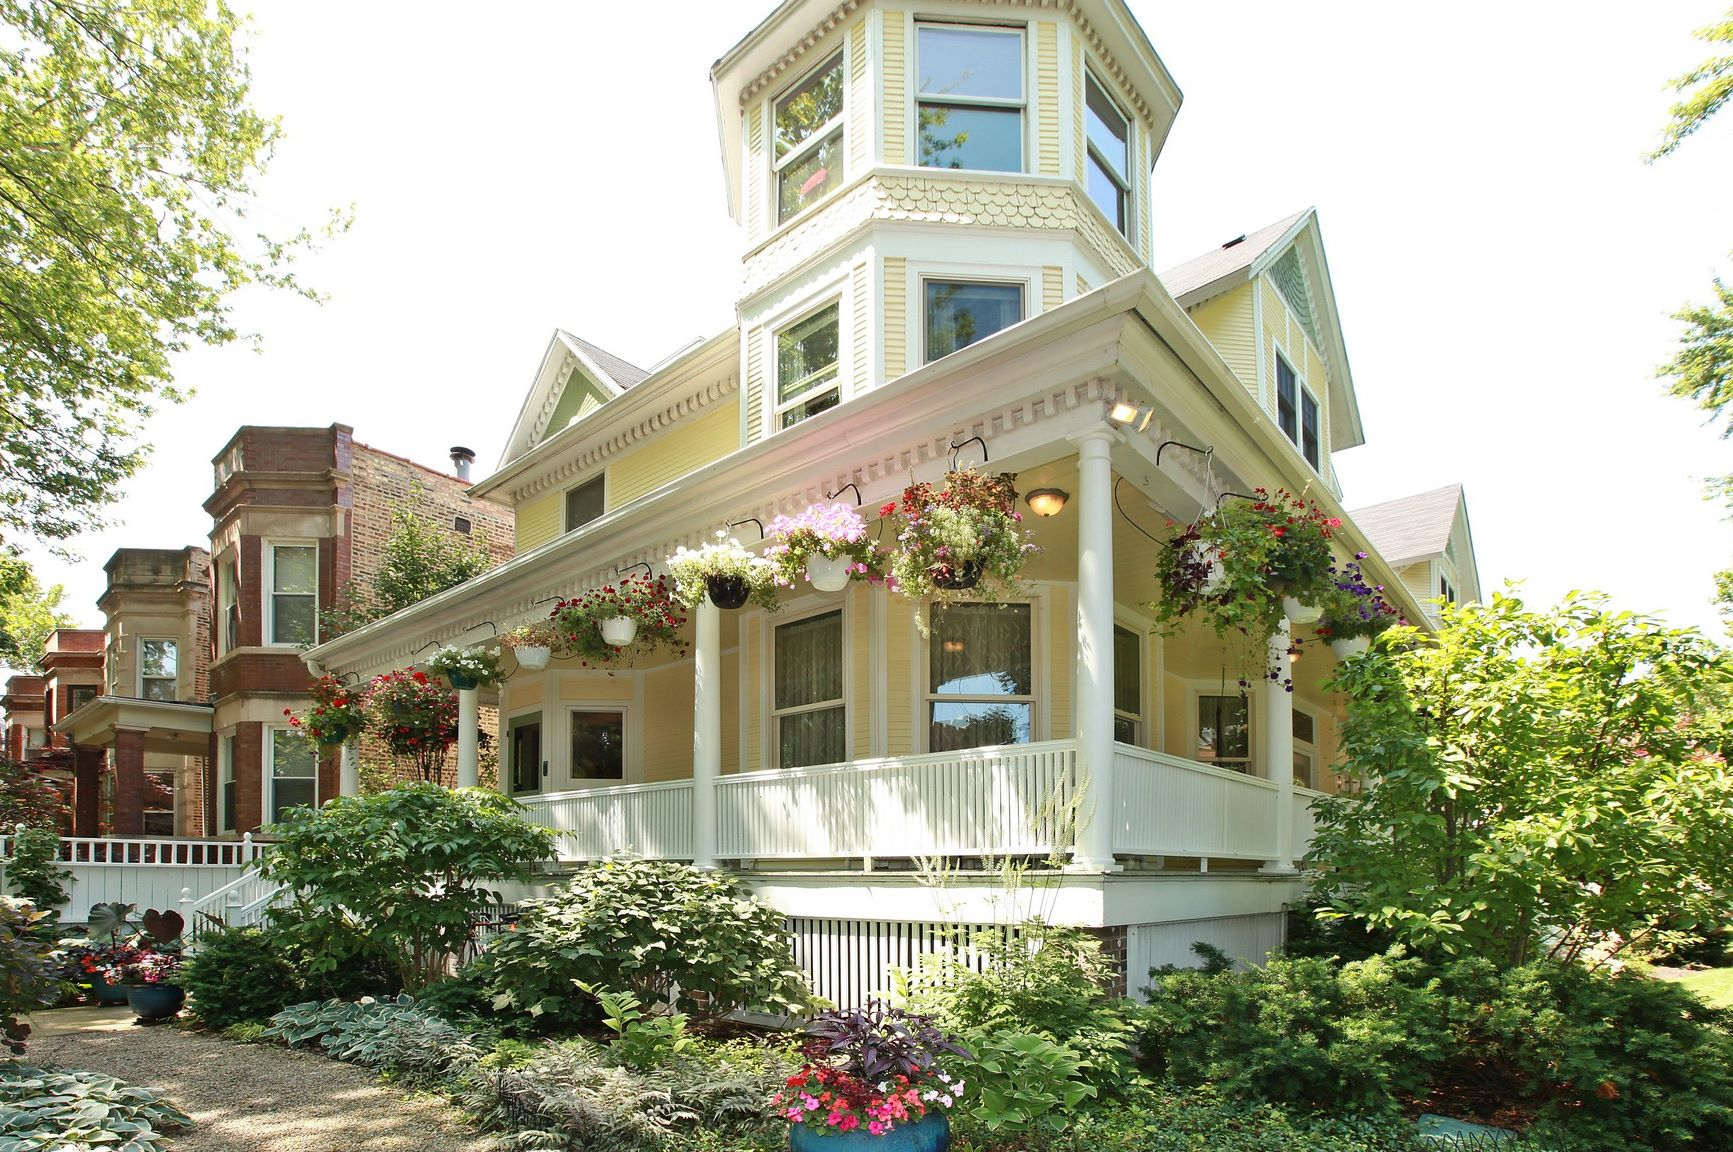 一戸建て のために 売買 アット One of a Kind Lakeview Victorian Masterpiece! 1904 W Patterson Avenue Lakeview, Chicago, イリノイ, 60613 アメリカ合衆国